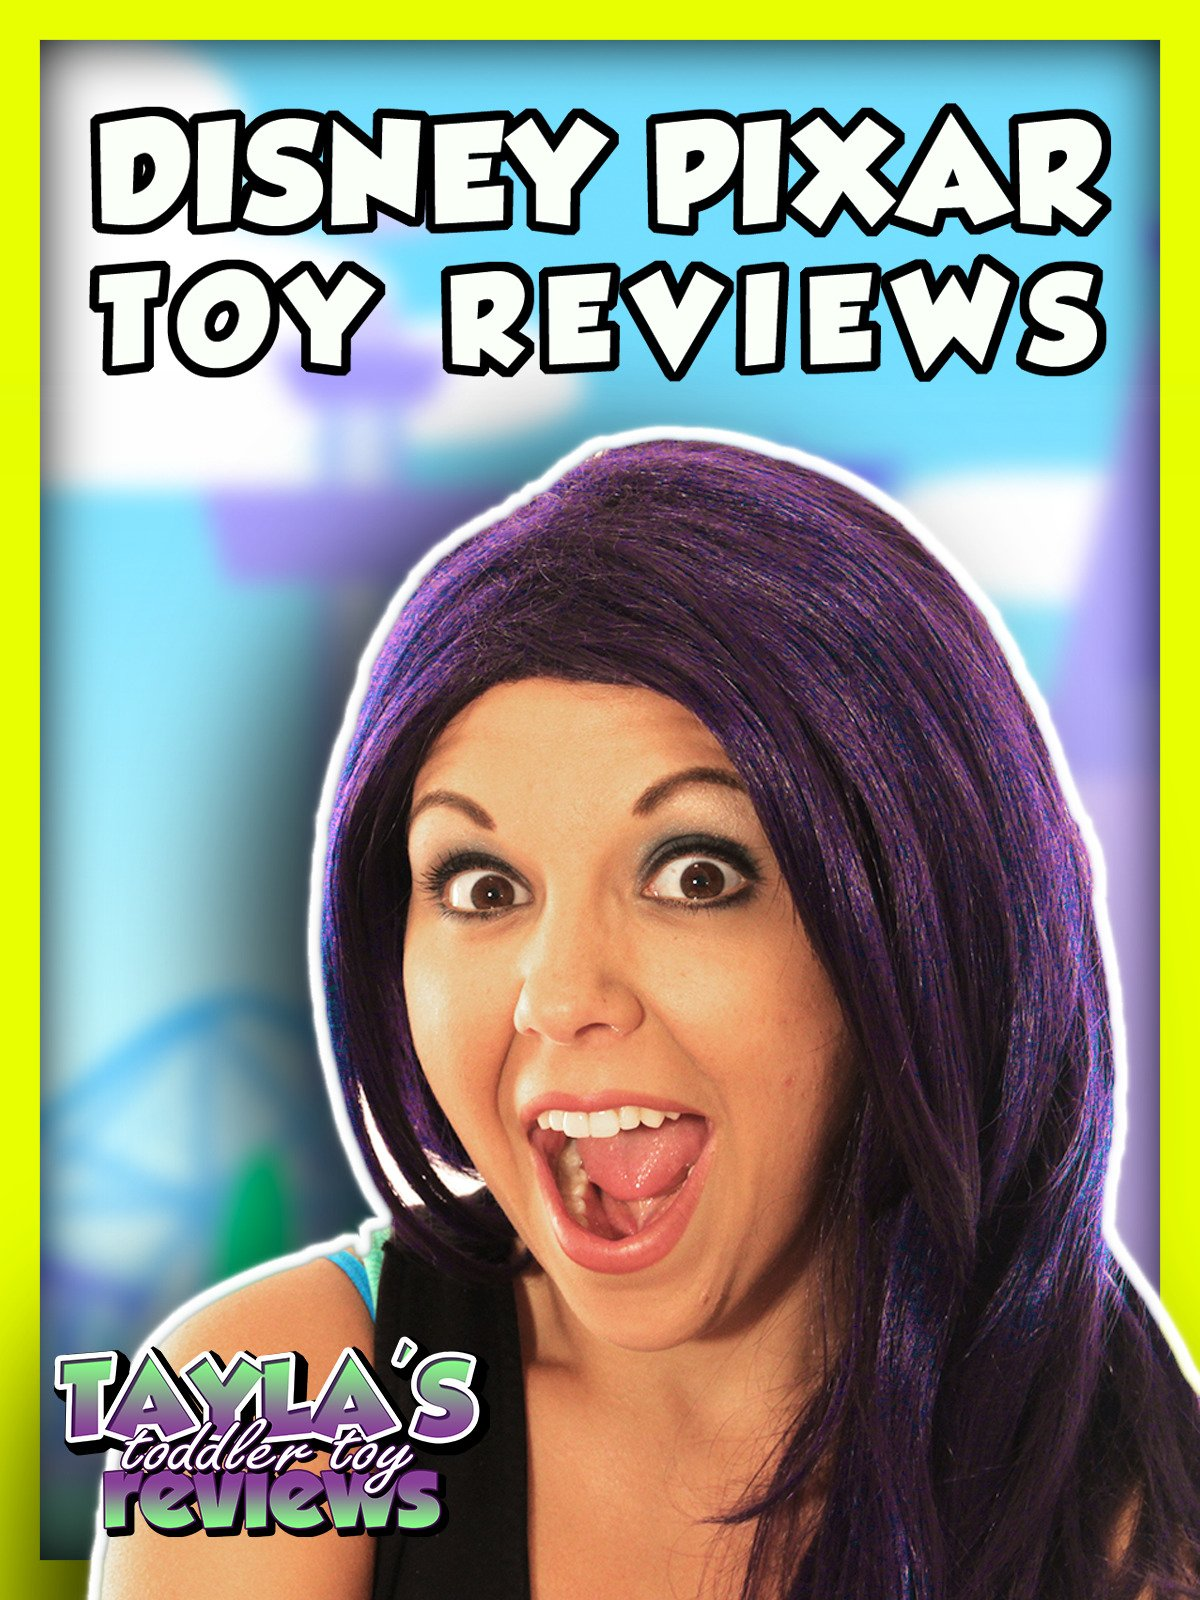 Review: Disney Pixar Toy Reviews